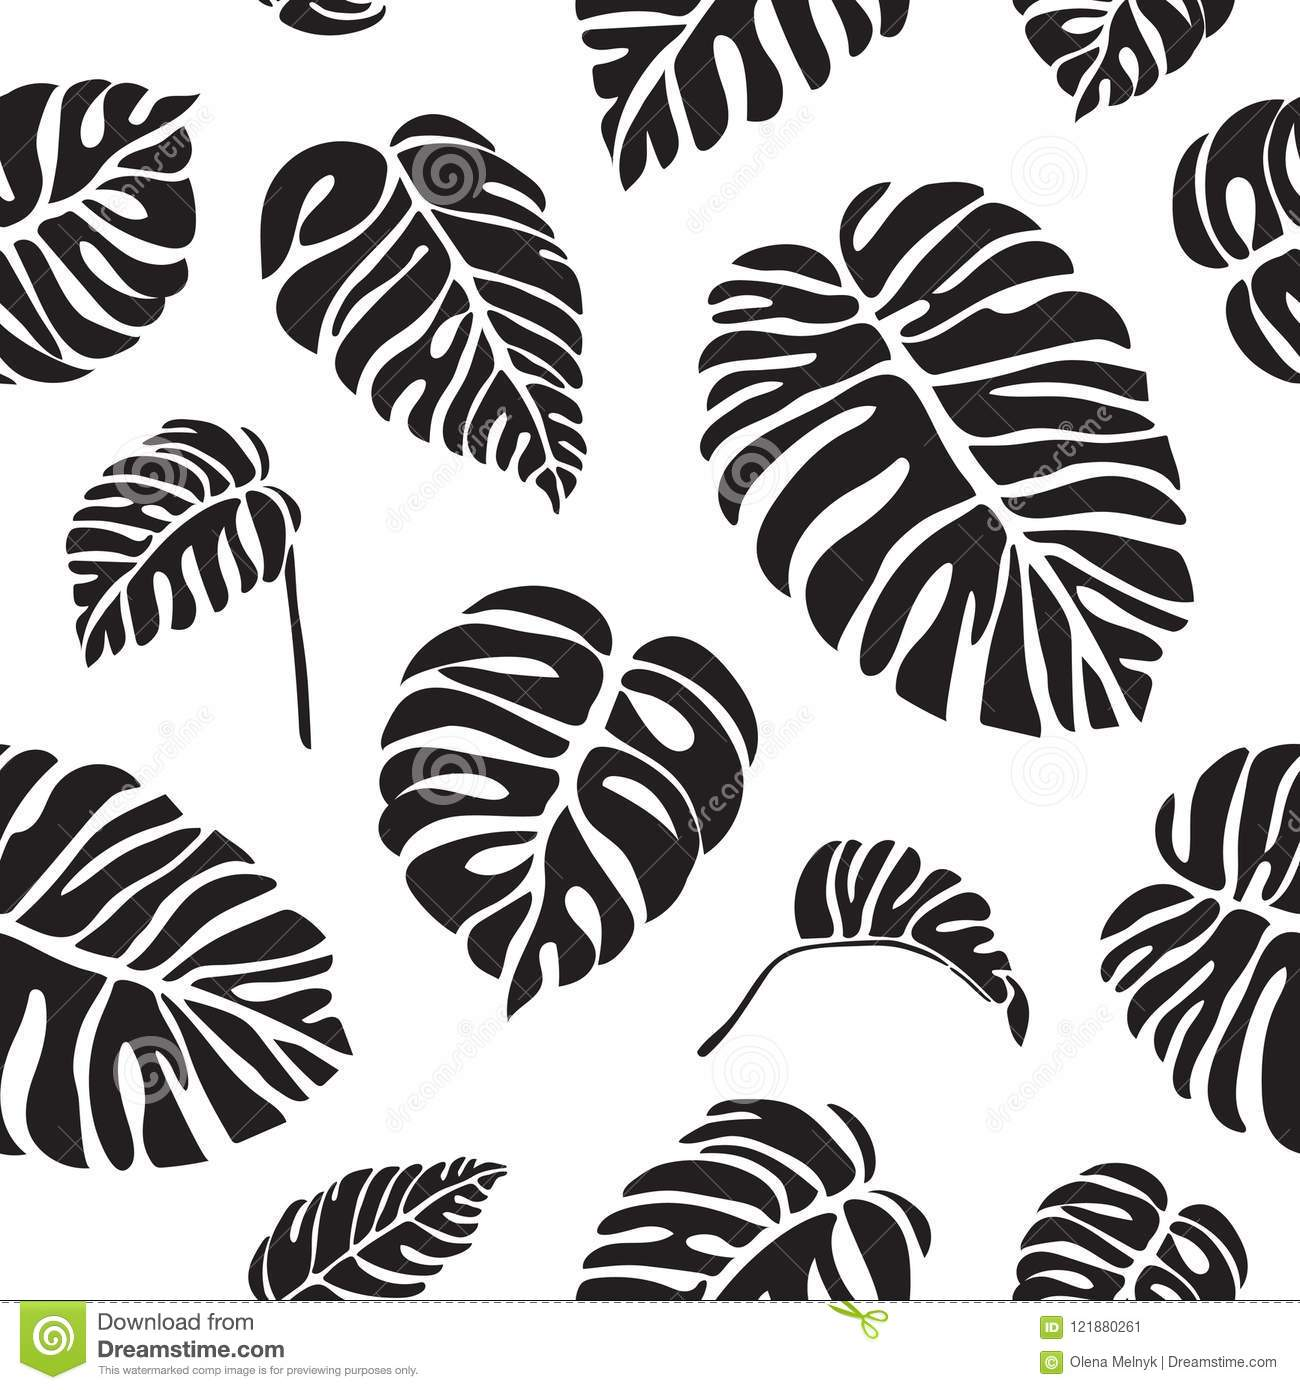 Tropical Leaves Monstera Black And White Seamless Pattern Stock Vector Illustration Of Silhouette Seamless 121880261 To get more templates about posters,flyers,brochures,card,mockup,logo,video,sound,ppt,word,please visit pikbest.com. https www dreamstime com tropical leaves monstera black white seamless pattern monstera black white seamless pattern tropical leaves vector image121880261